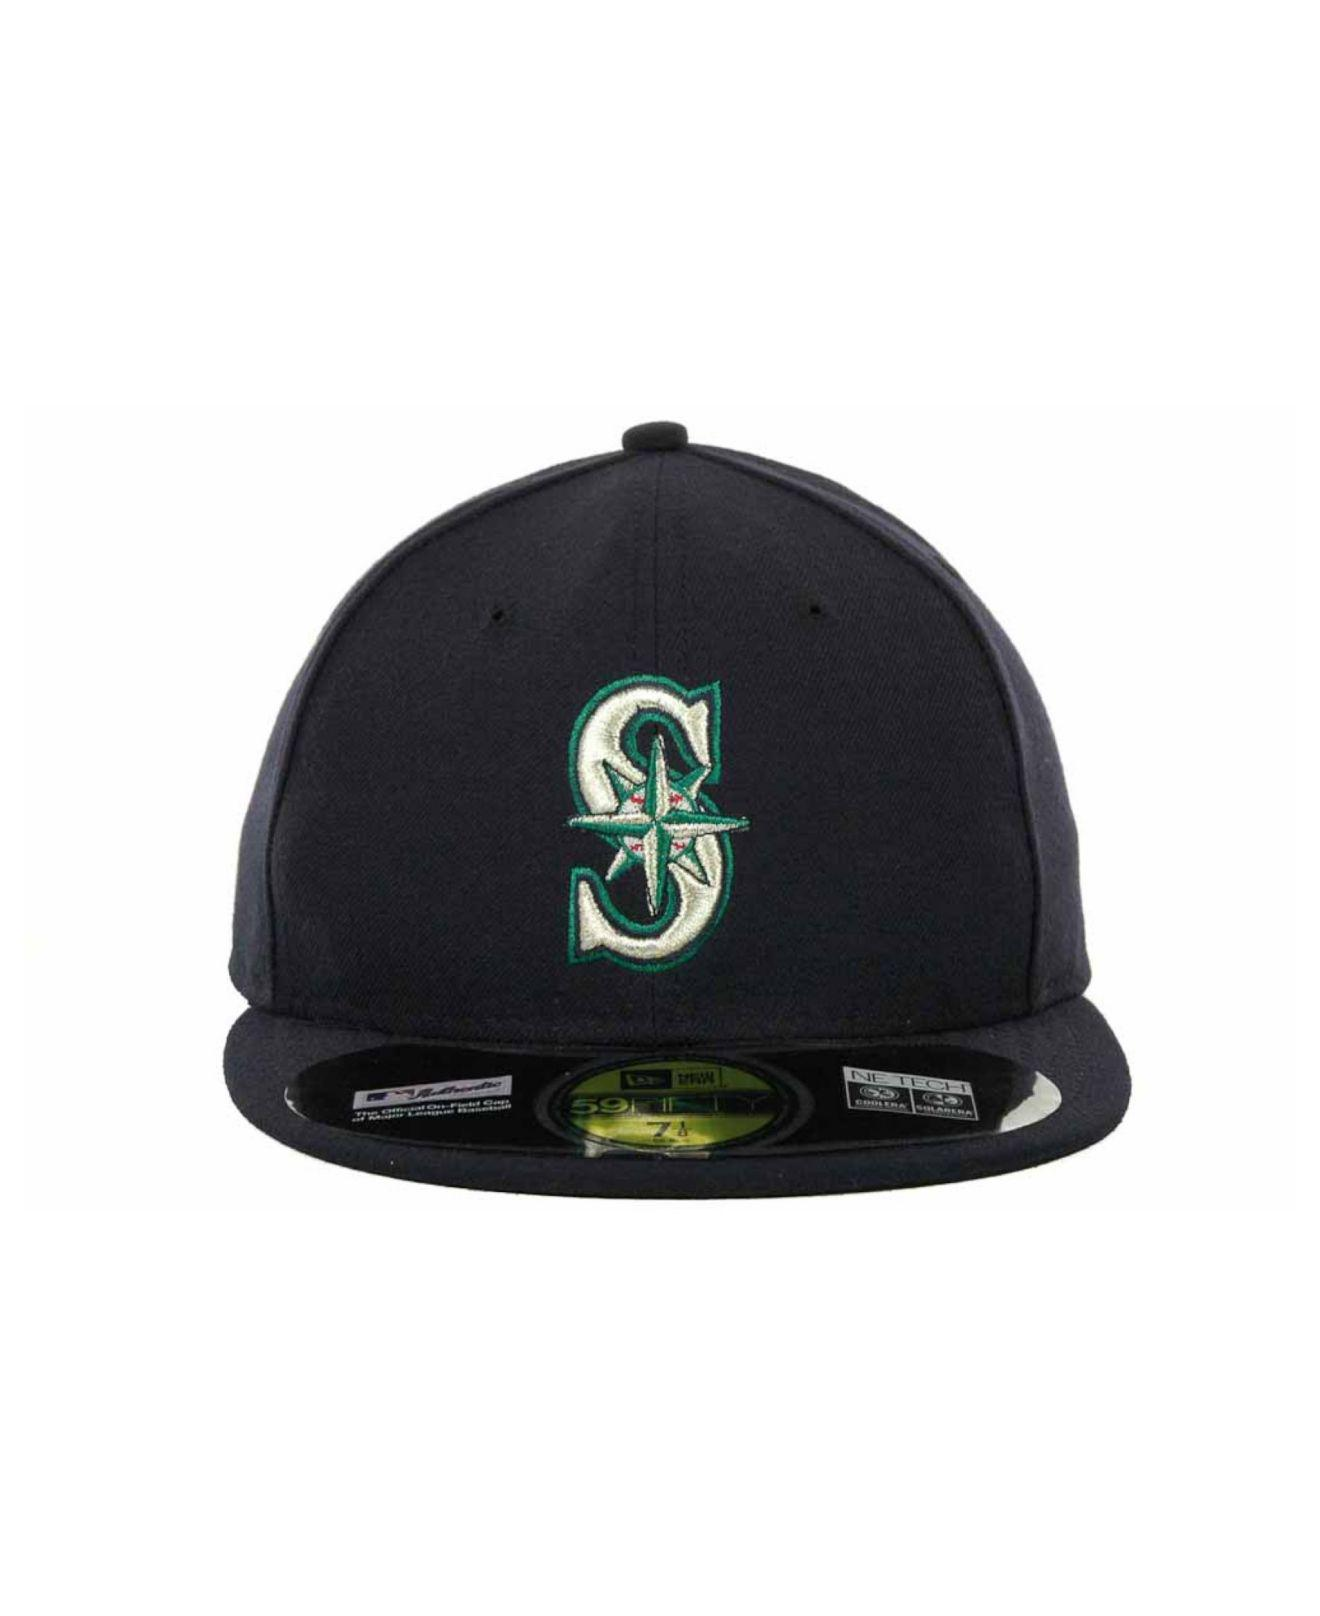 finest selection 29d6e 8c93e Lyst - KTZ Seattle Mariners Authentic Collection 59fifty Hat in Blue for Men